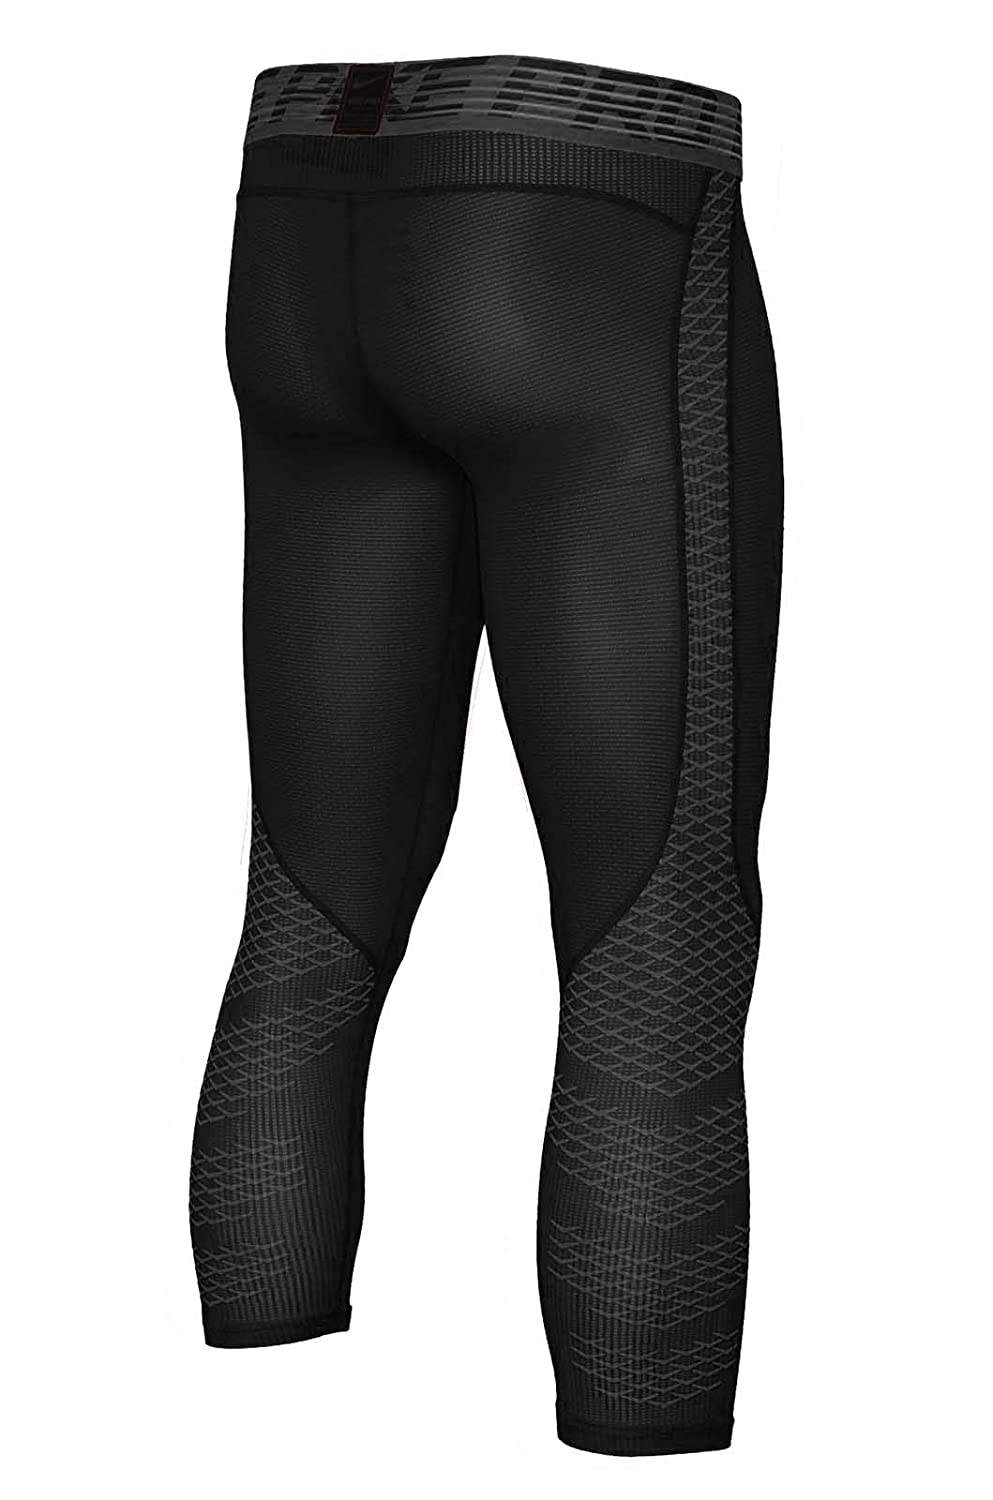 cbaf50c8262b4 Amazon.com: NIKE Men's Pro Hypercool 3/4 Black Tights 932411-010, Black /  Grey, Medium: Clothing